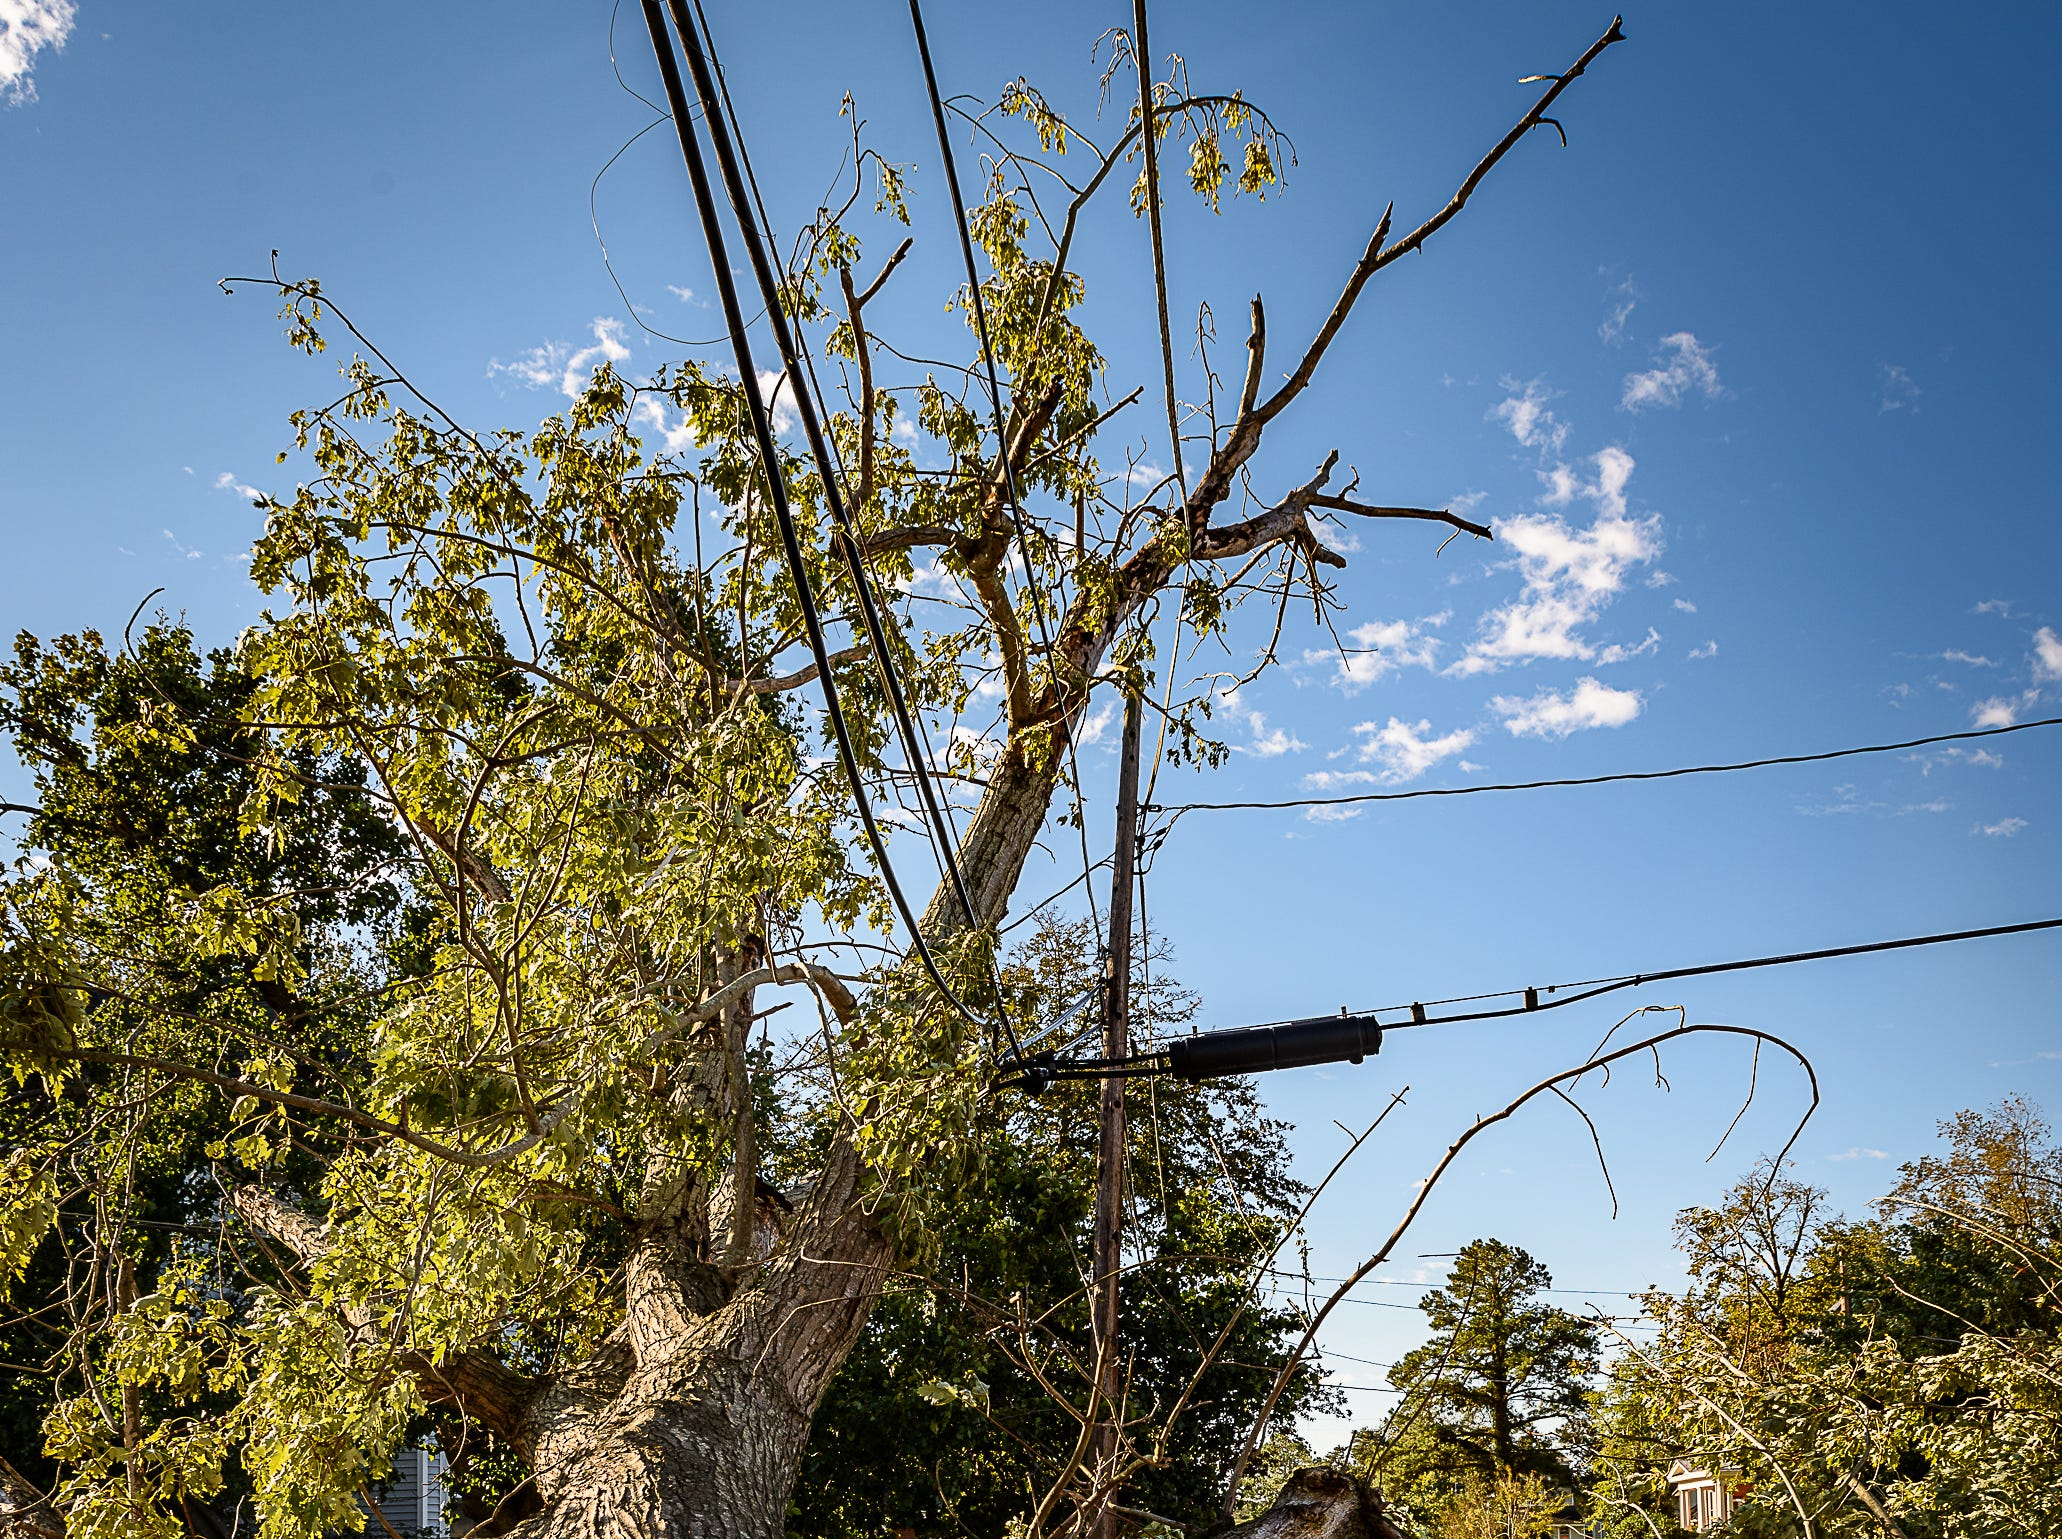 A downed tree balances precariously on a power line in Cape Charles, Virginia after a storm on Oct. 12, 2018.